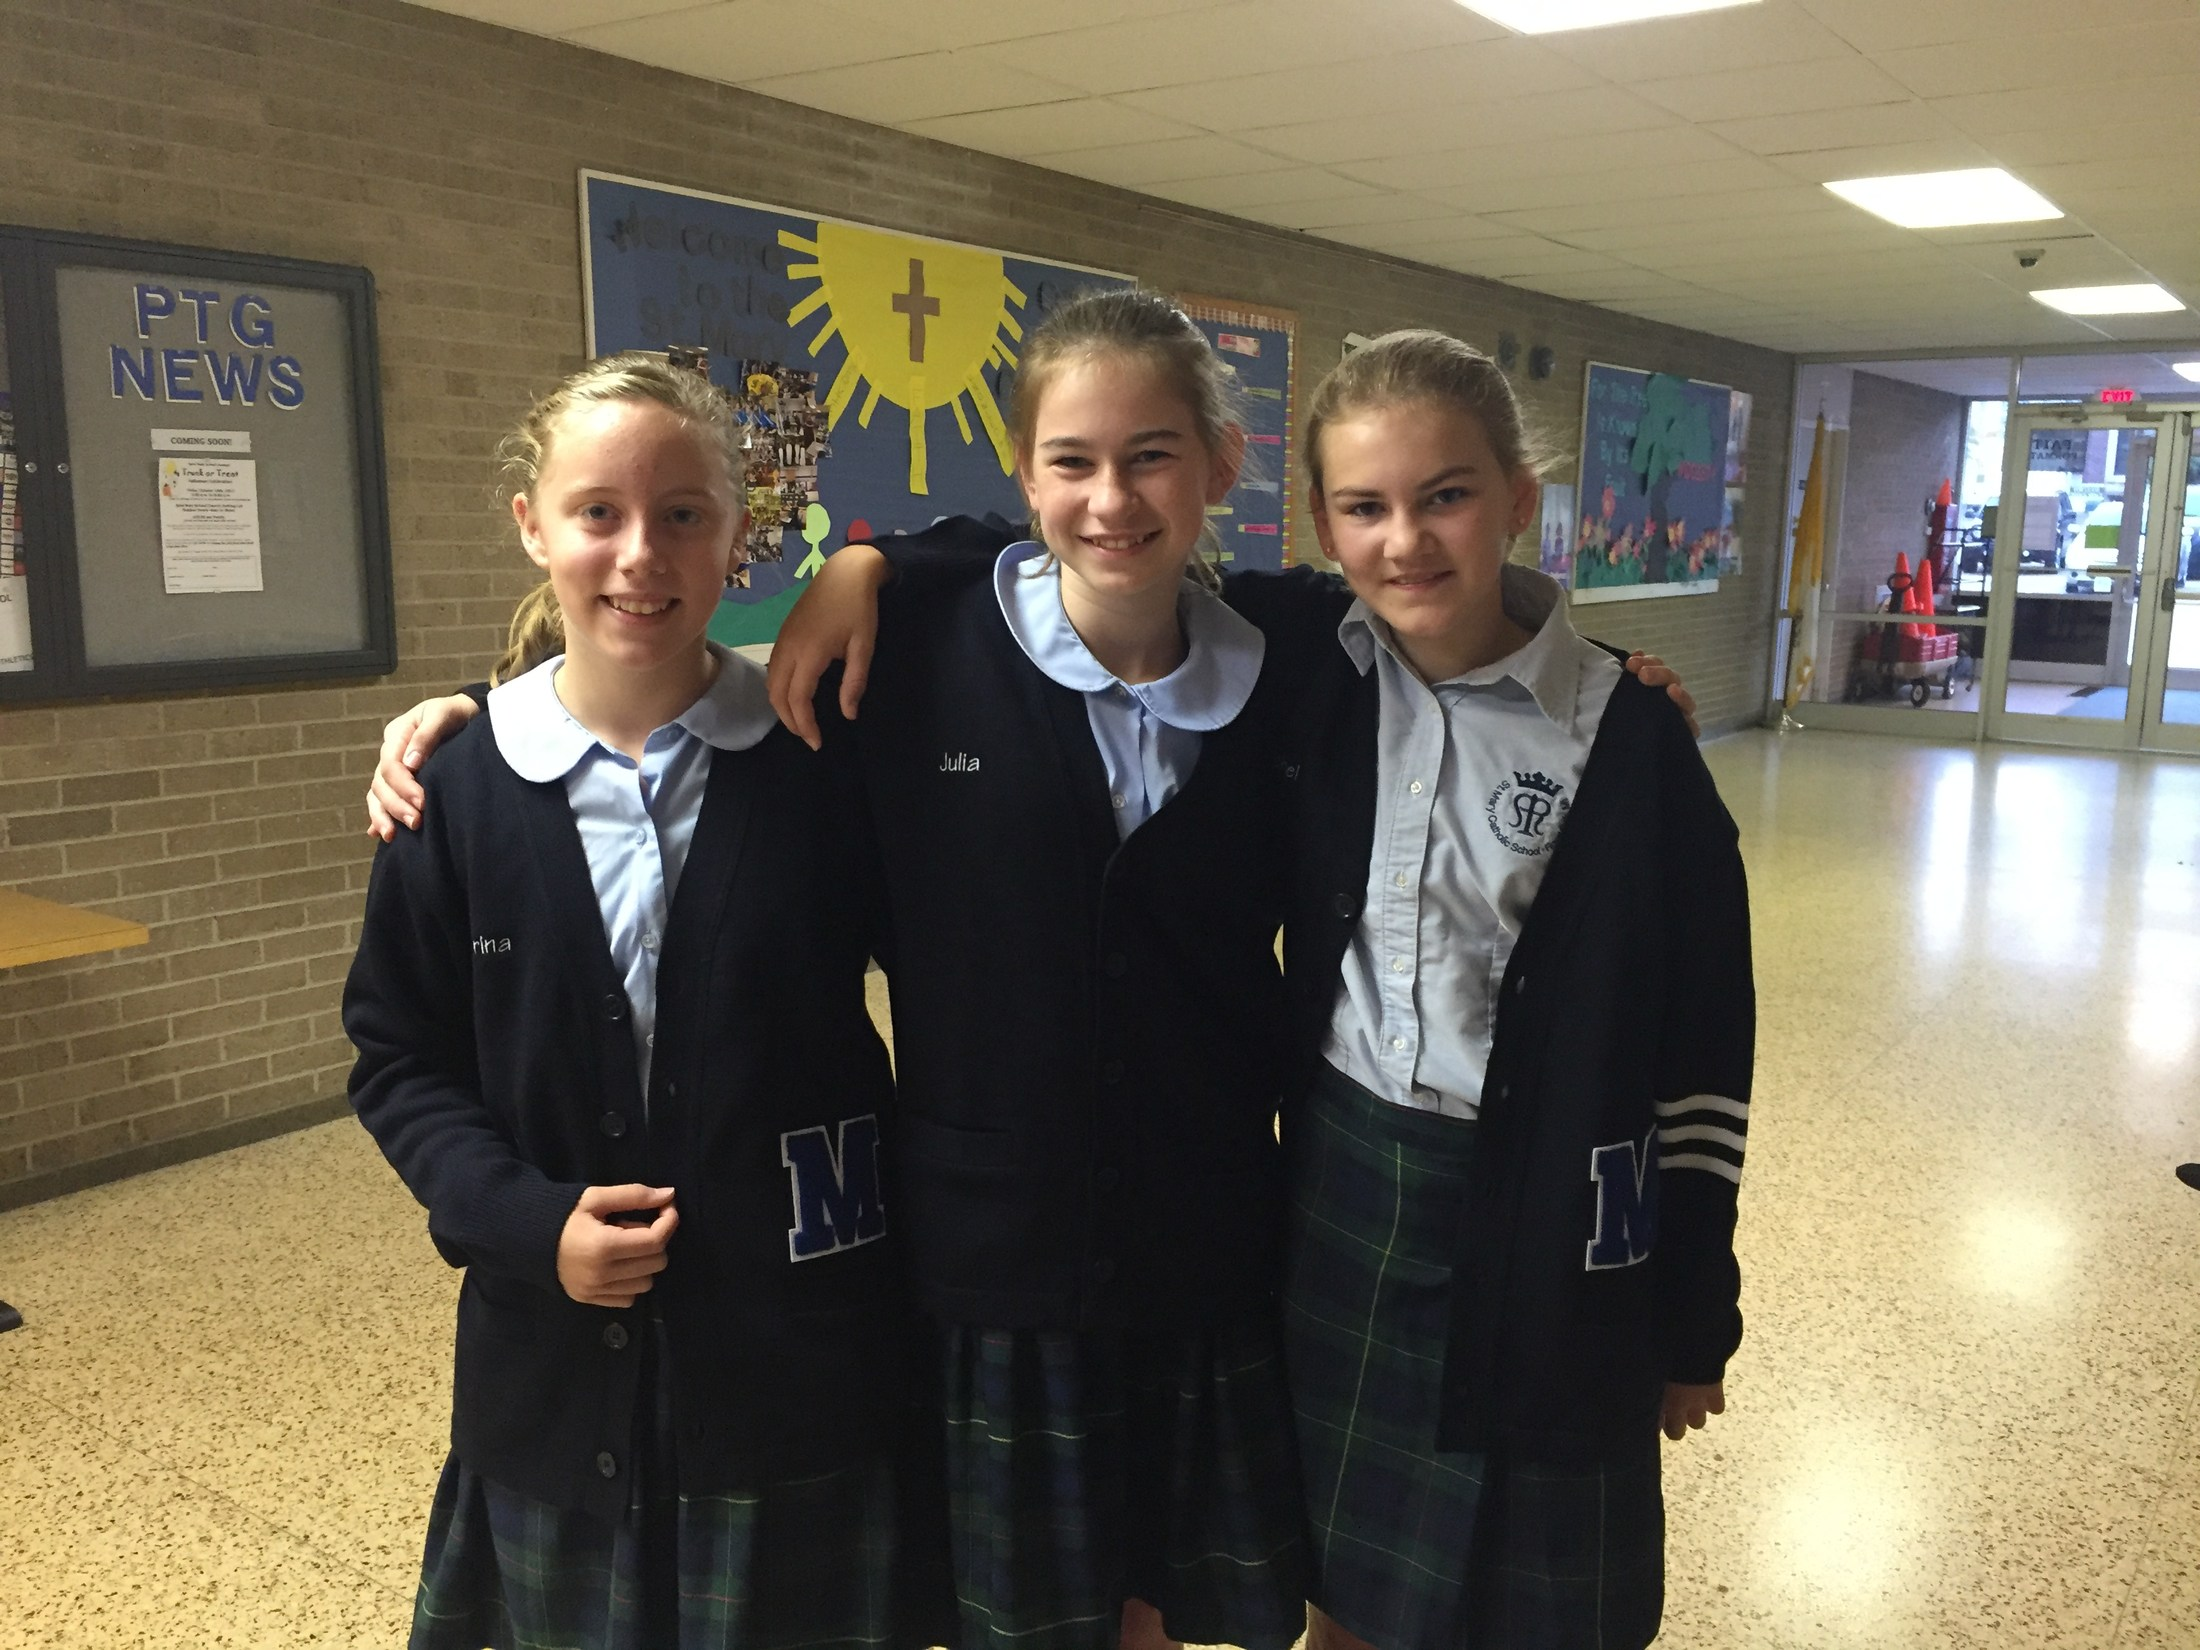 The letter sweaters look great! St. Mary Catholic School